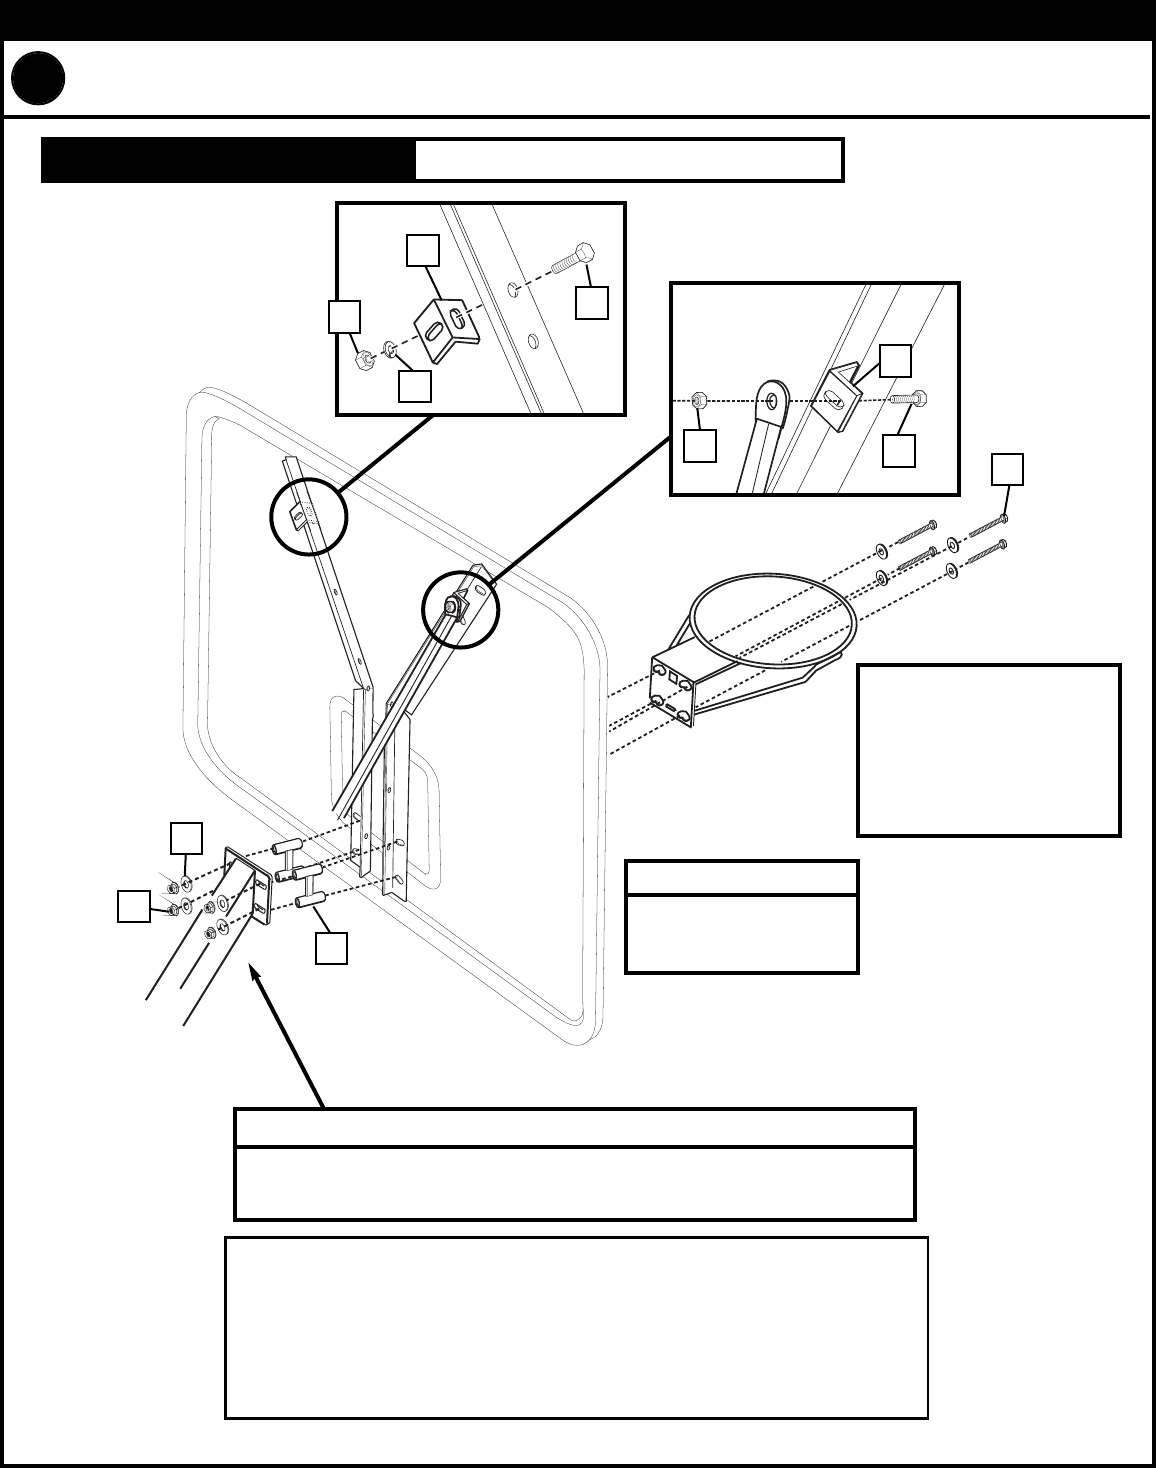 Page 8 of Huffy Board Games Backboard and Rim User Guide